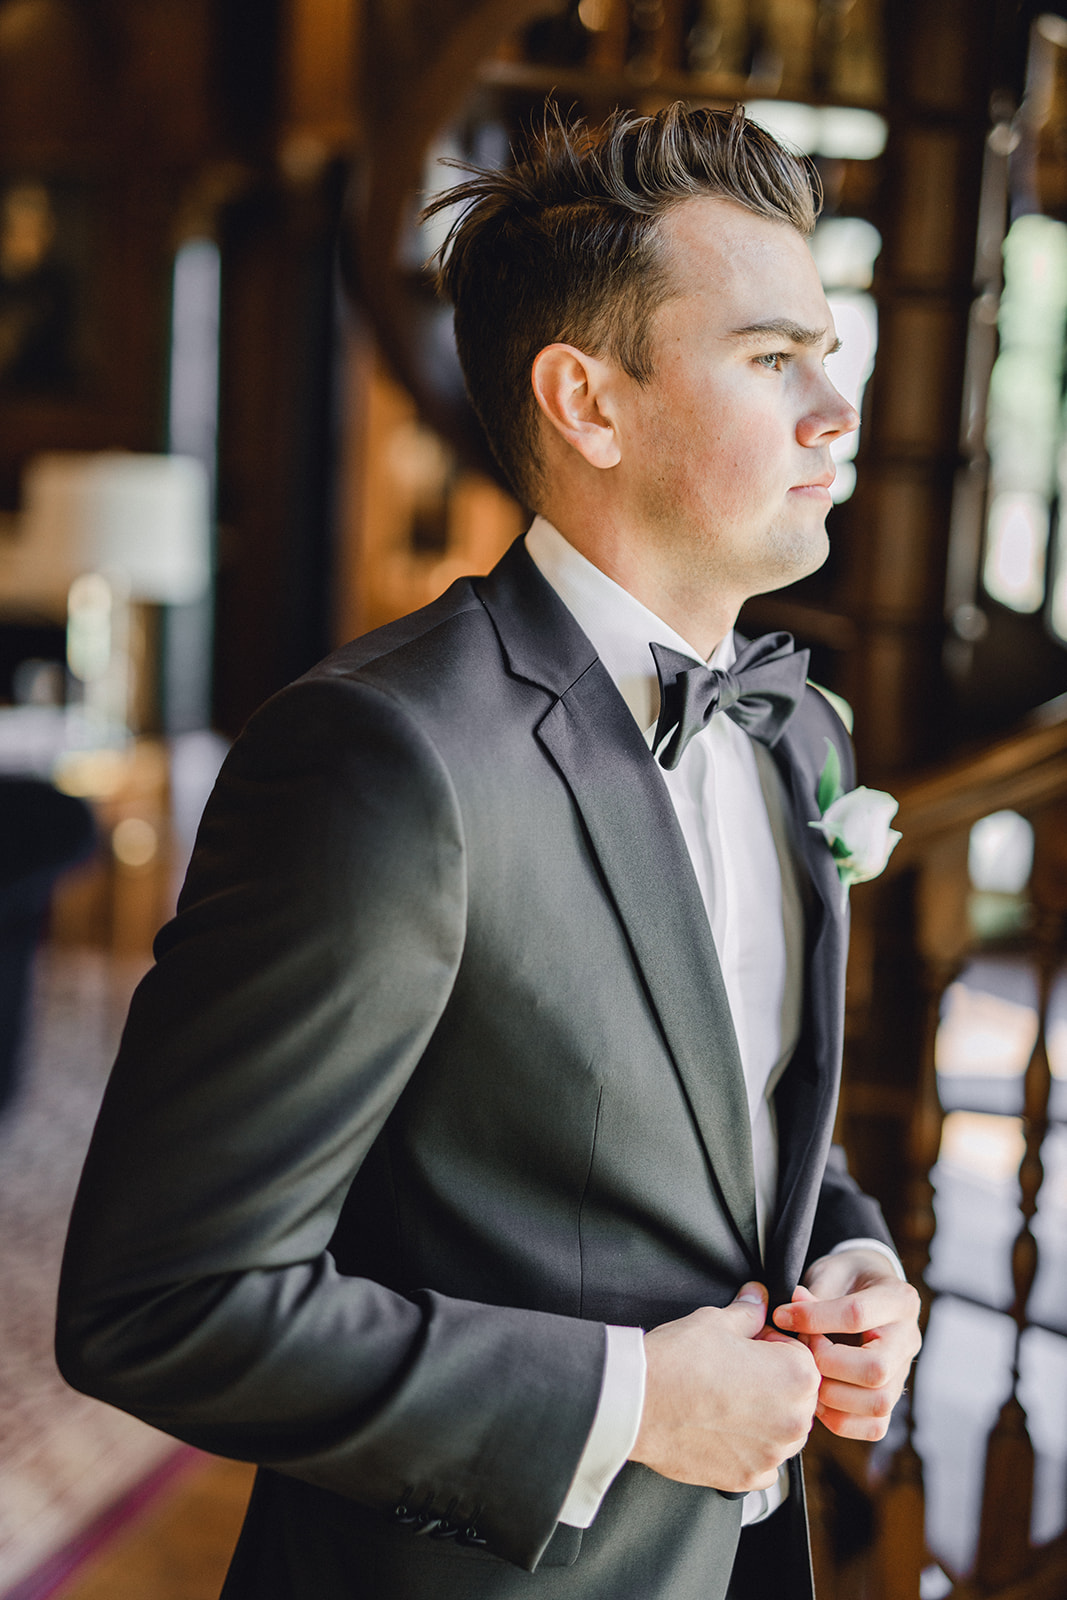 The black tux wedding tuxedo